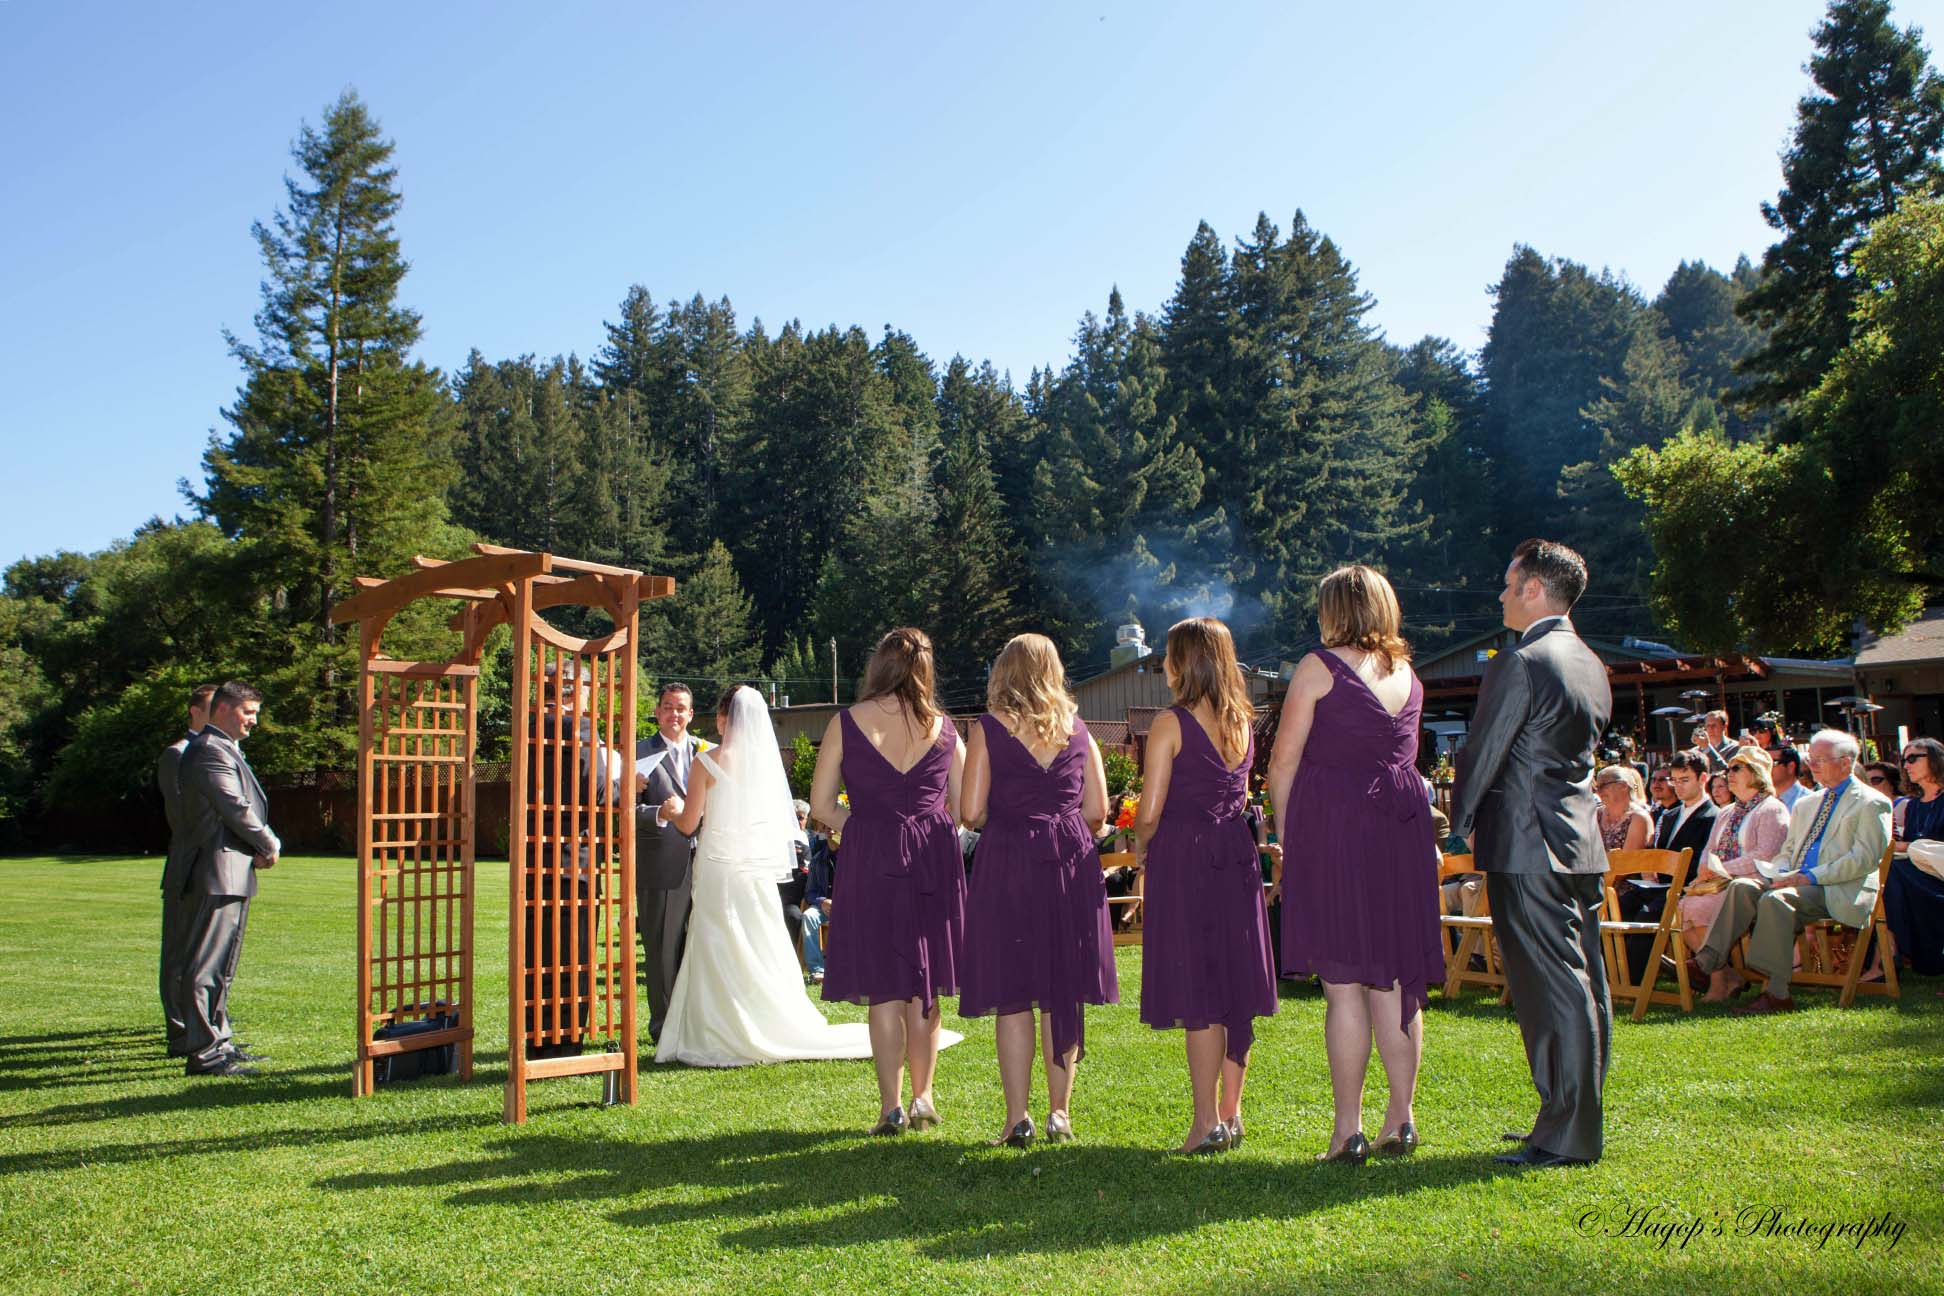 wedding ceremony from a different angle